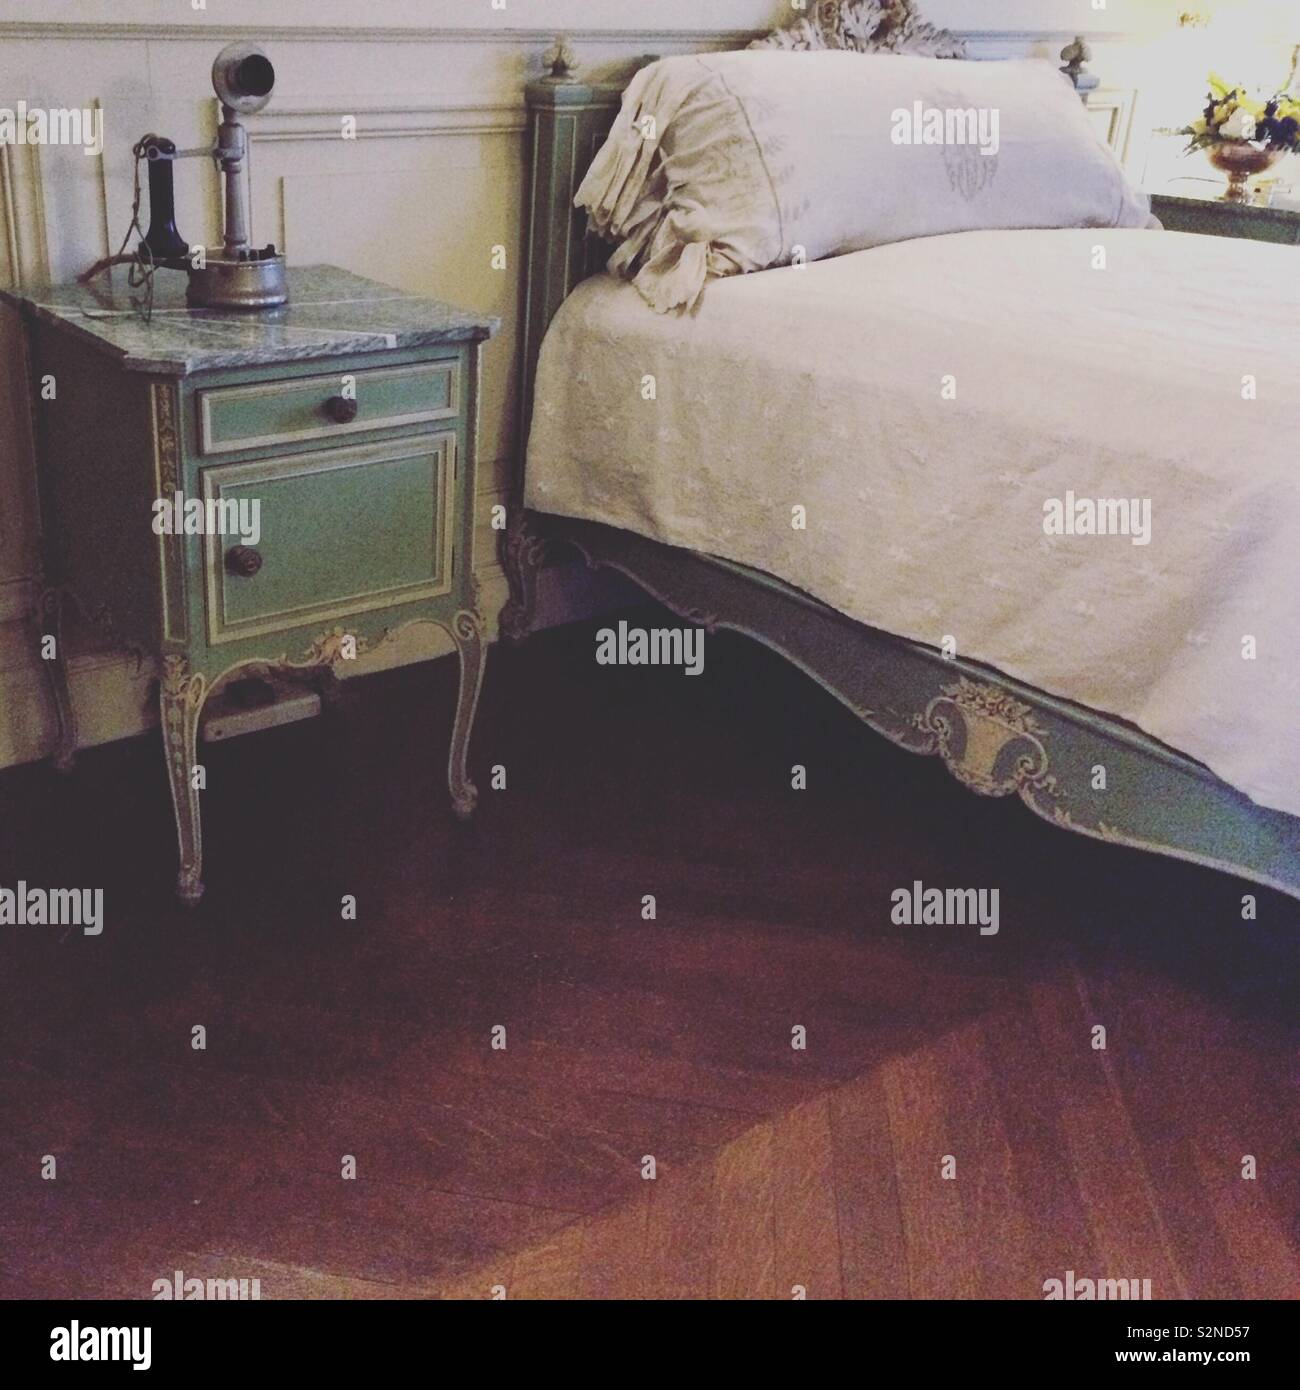 Chambre à Coucher Newport Bedroom Furnishings Photos Bedroom Furnishings Images Alamy